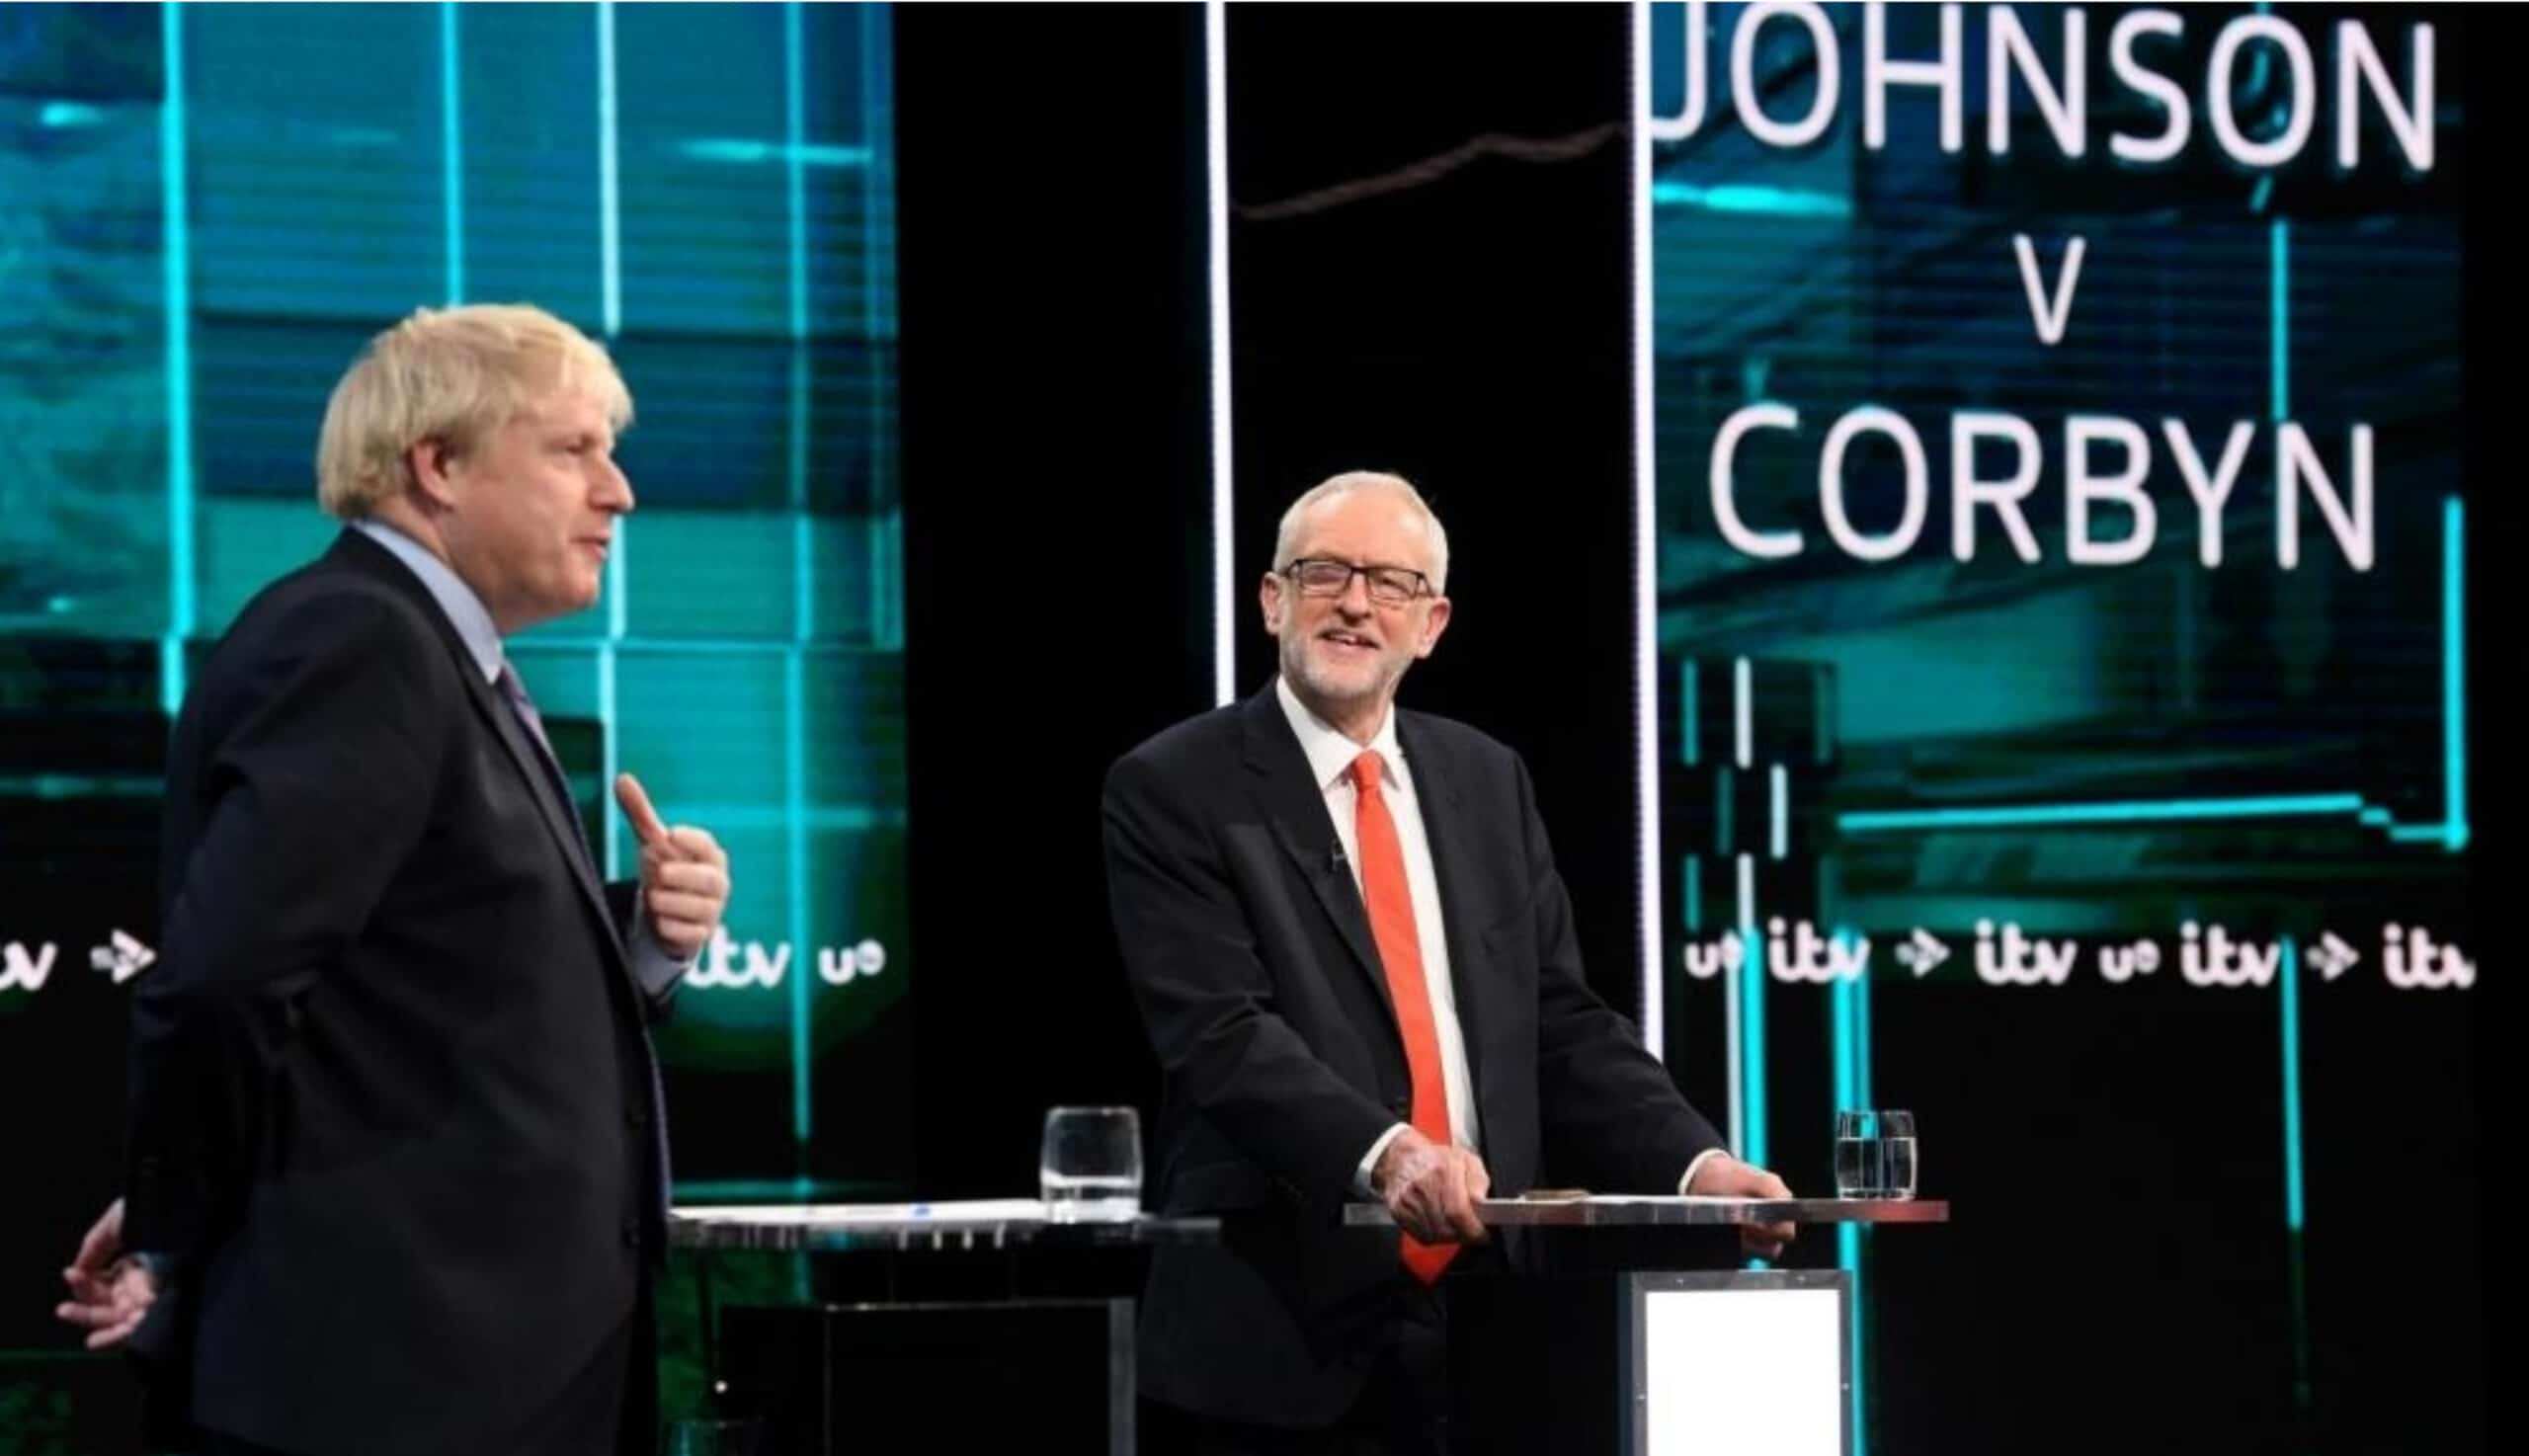 Corbyn - Johnson TV debate